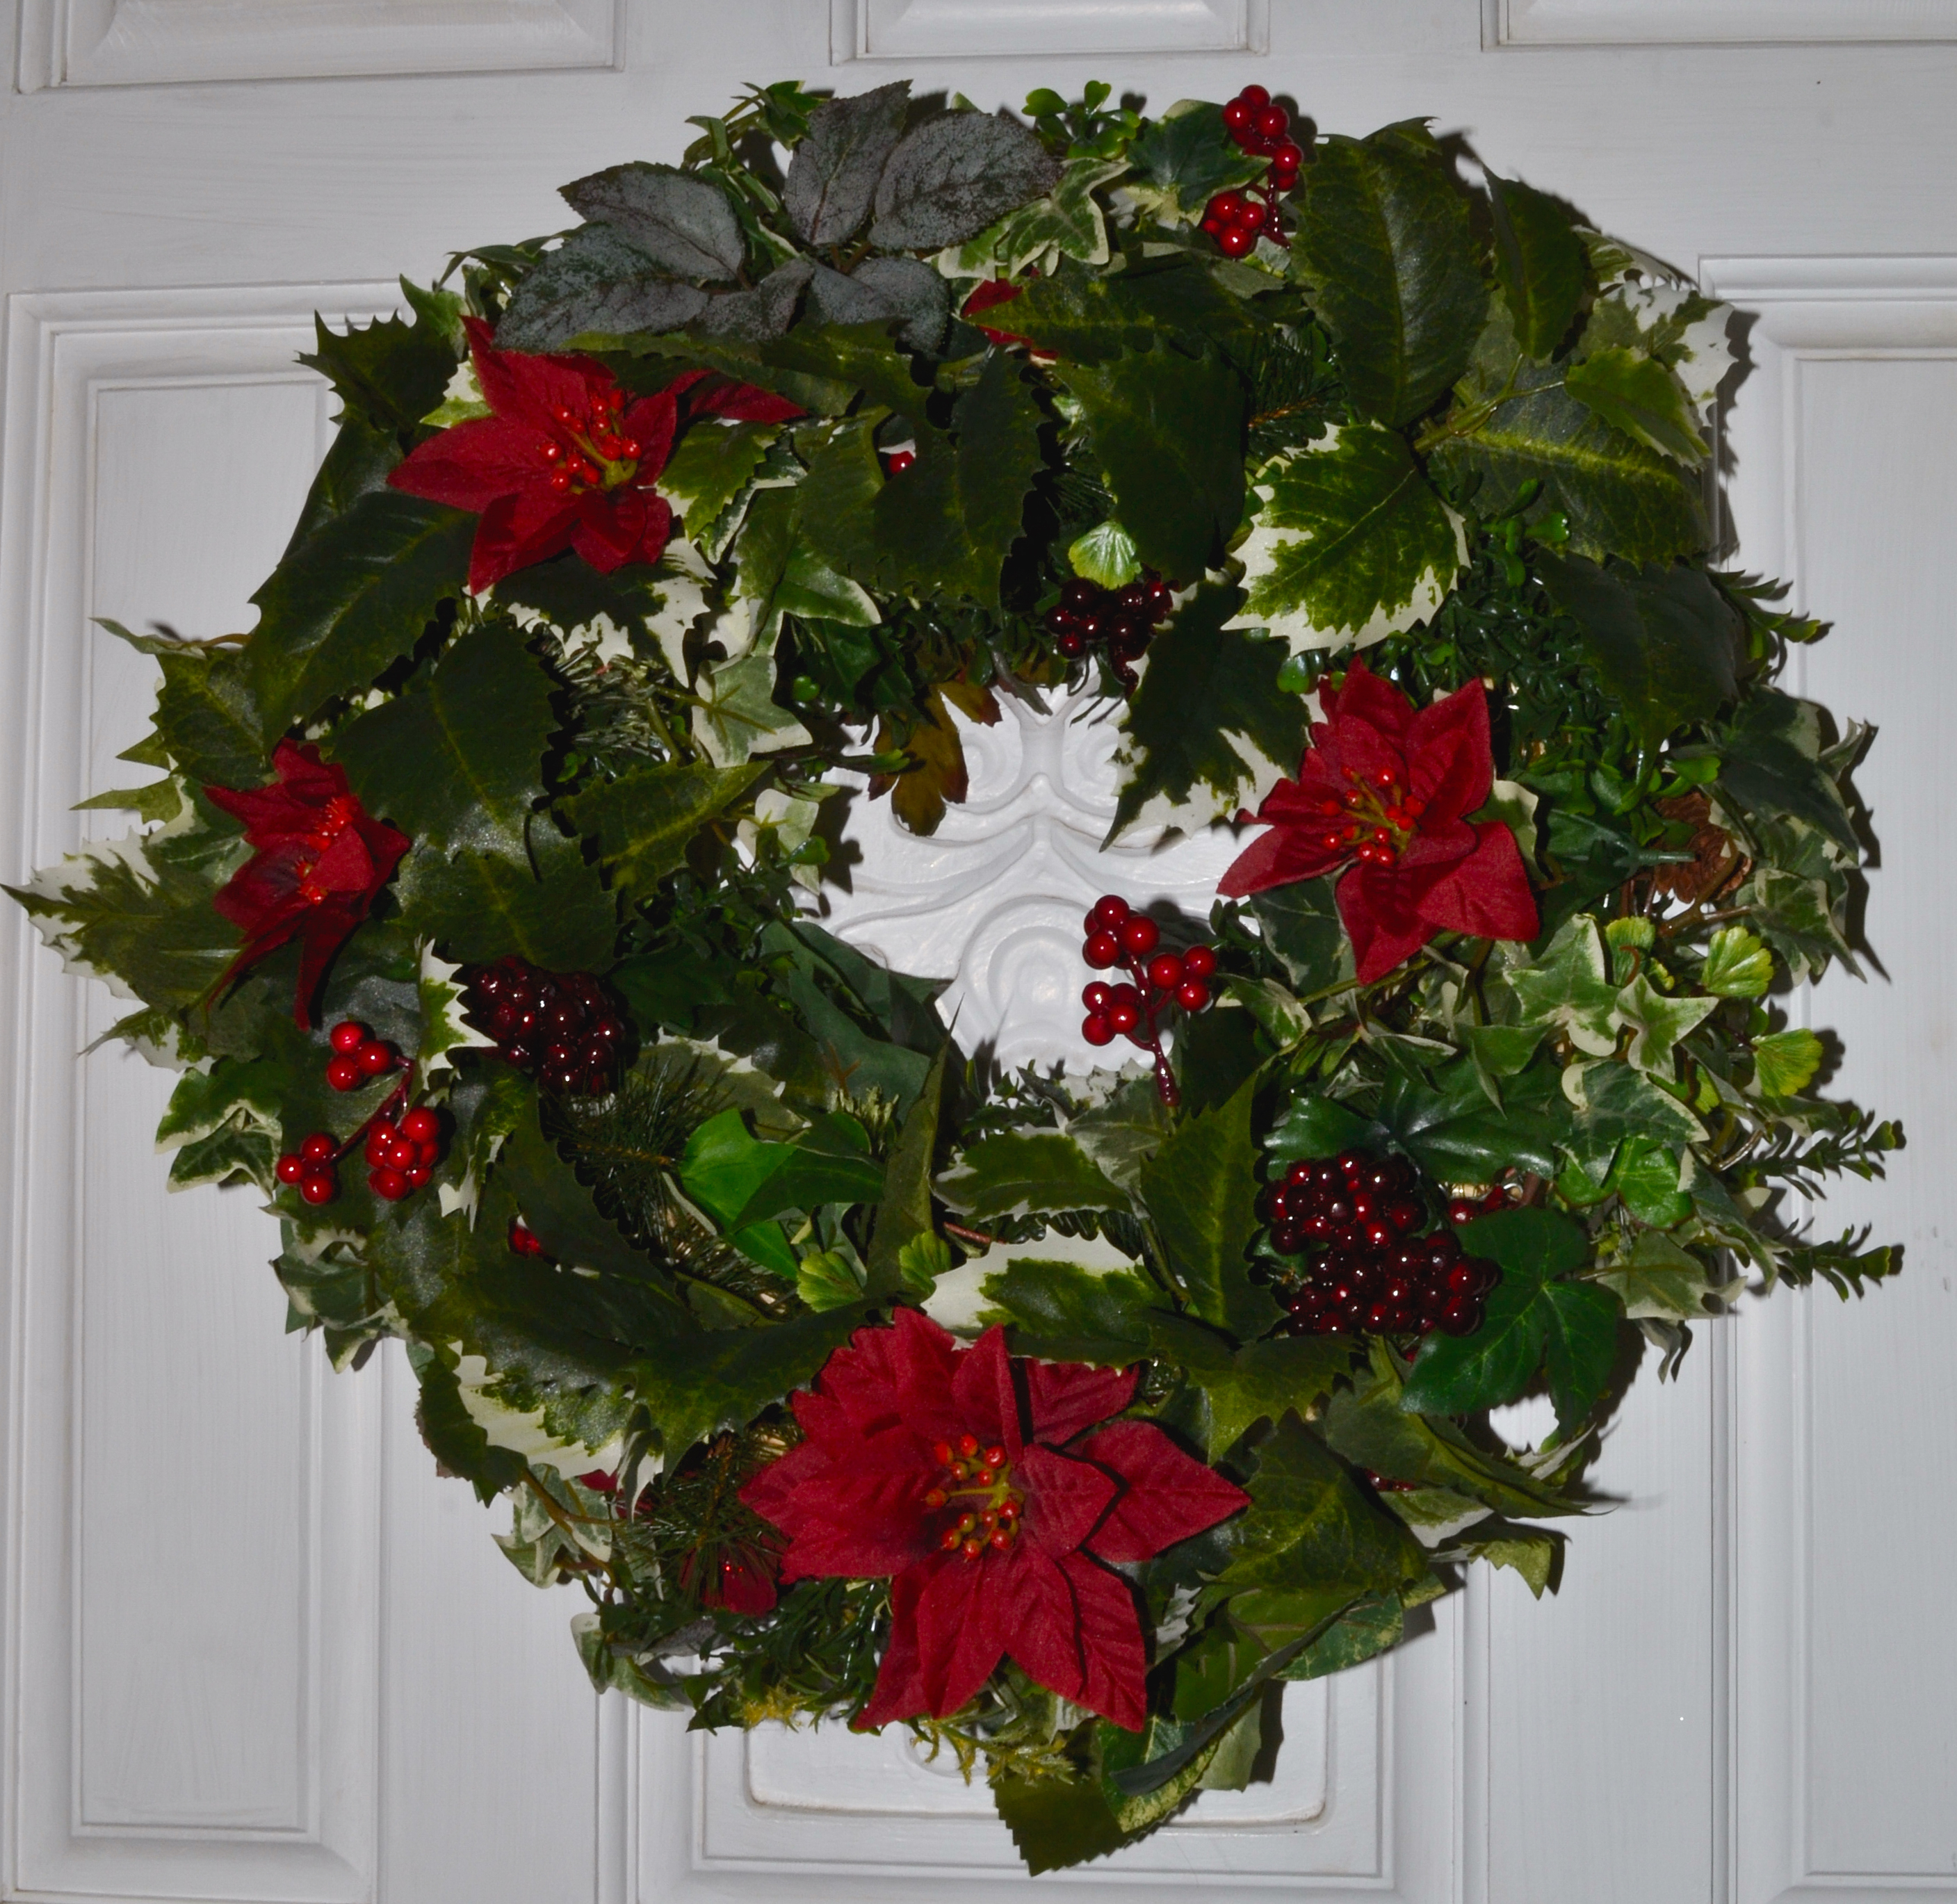 How to make a wreath funtastic unit studies home Simple christmas wreaths